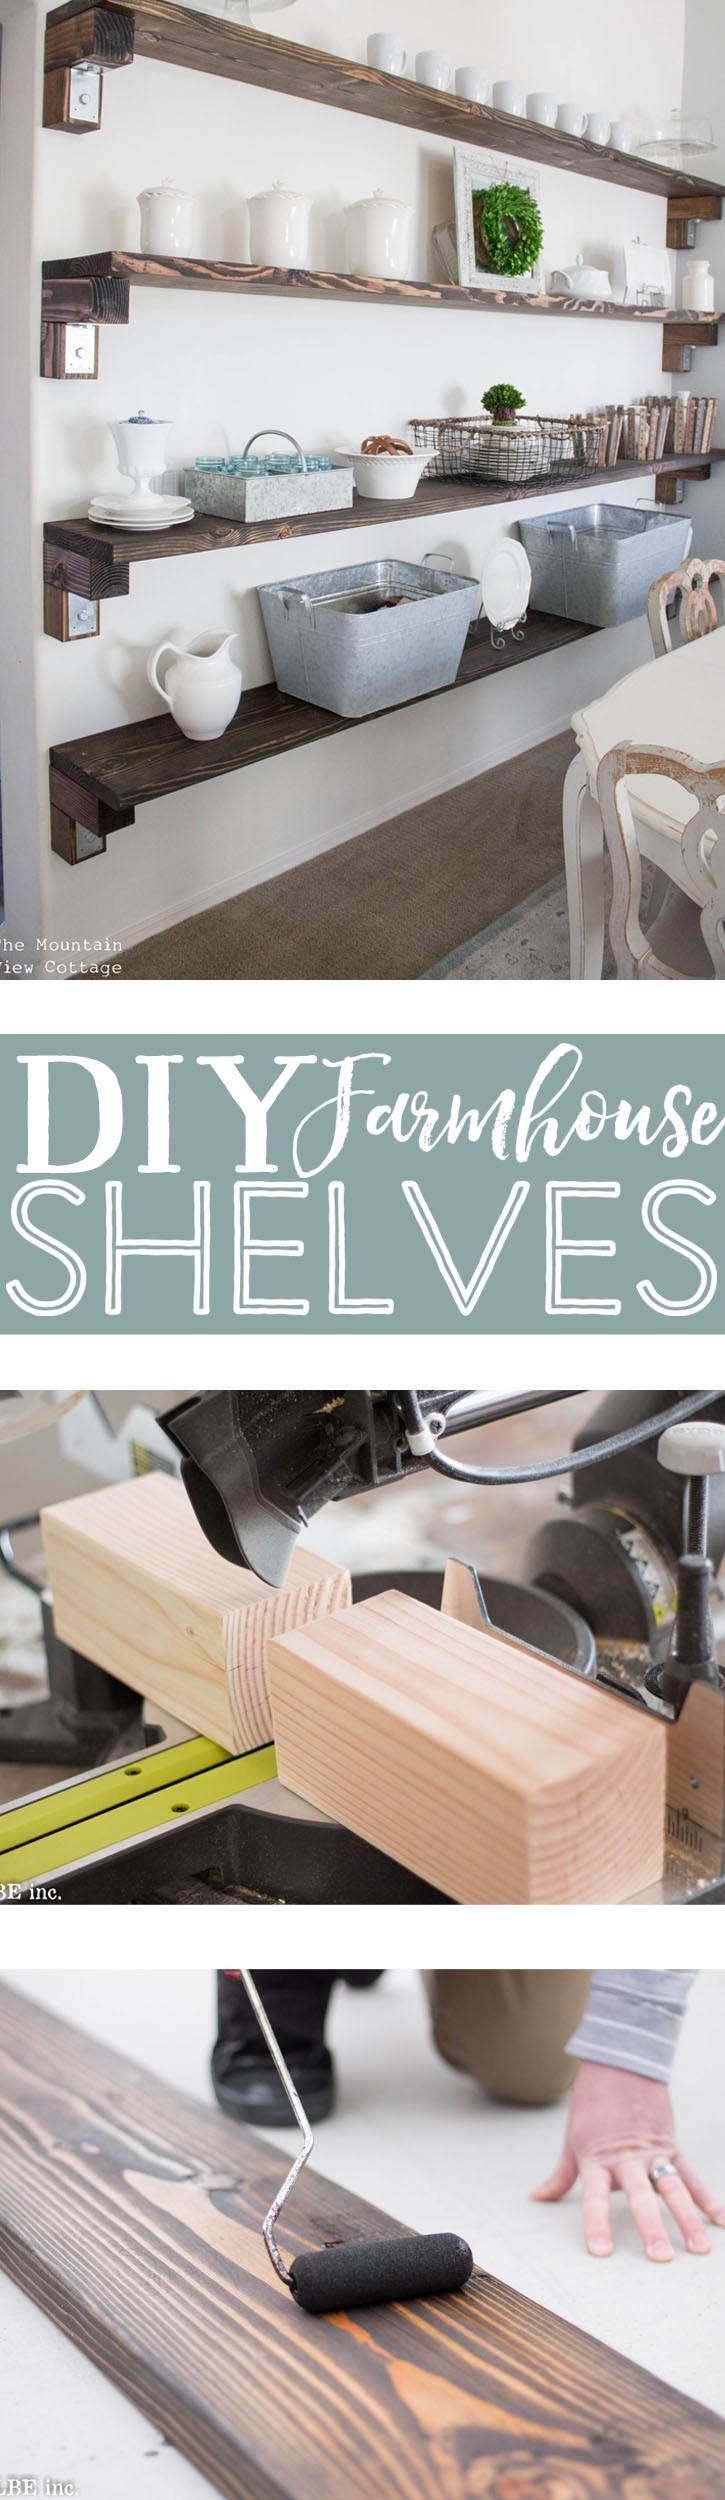 15 Brilliant DIY Shelves You Can Build Yourself - Homelovr